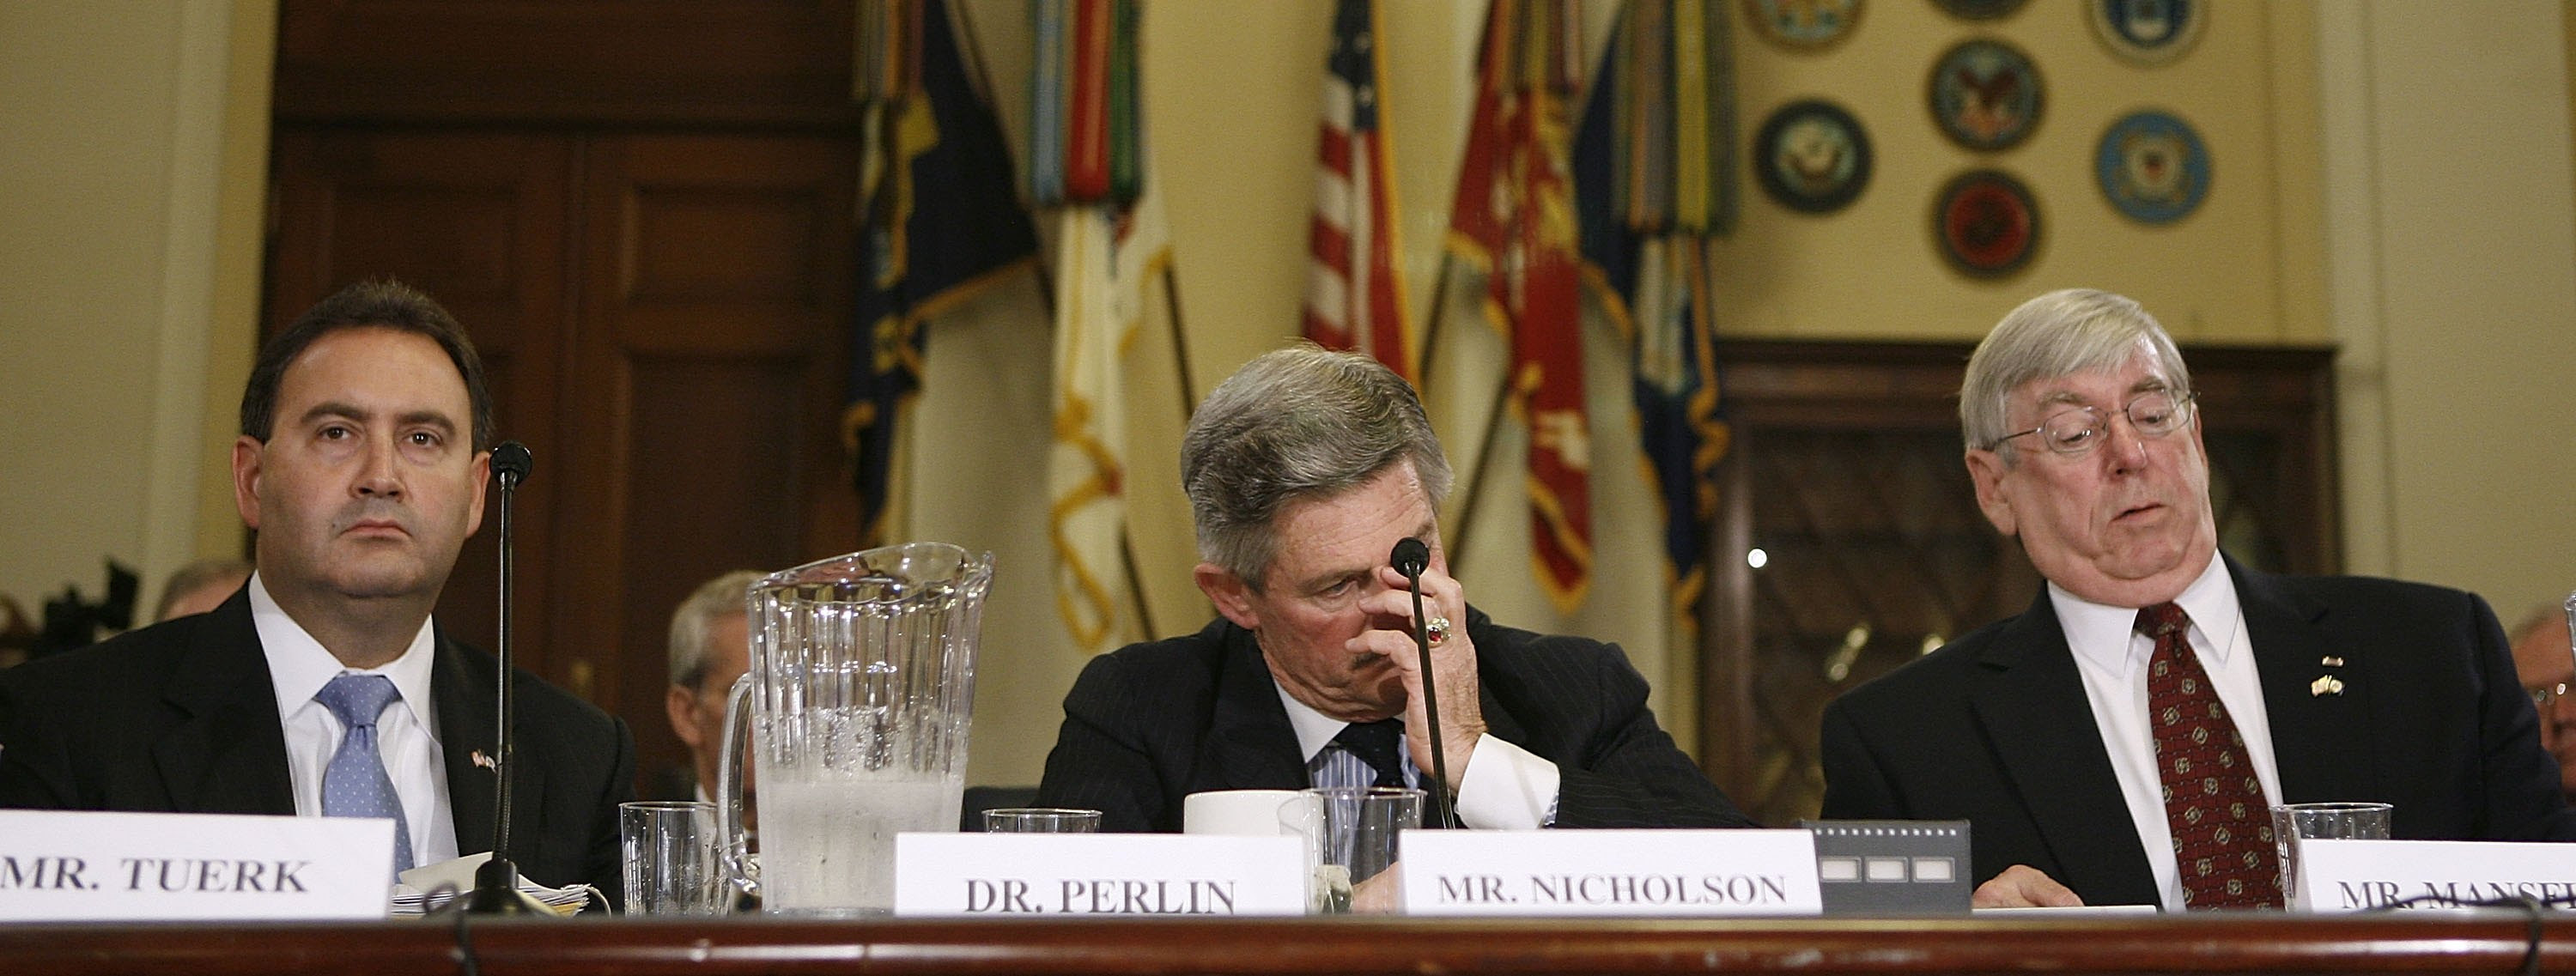 Top VA officials attend a House Committee hearing in 2006 on the breach of data security at the department.